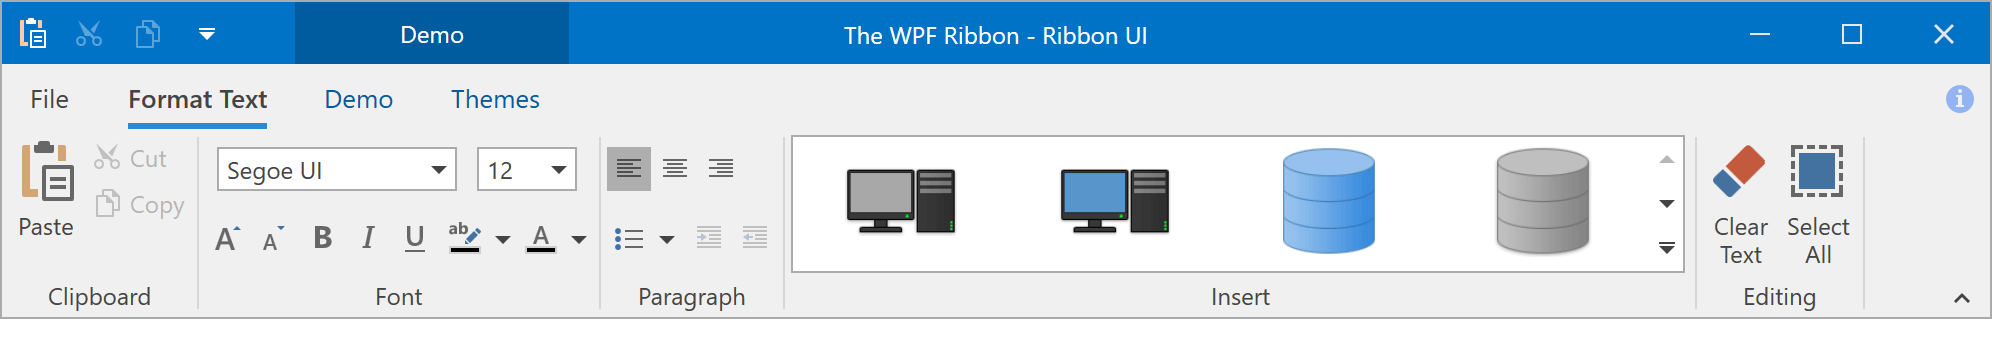 Office 2019 Style - WPF Ribbon, DevExpress